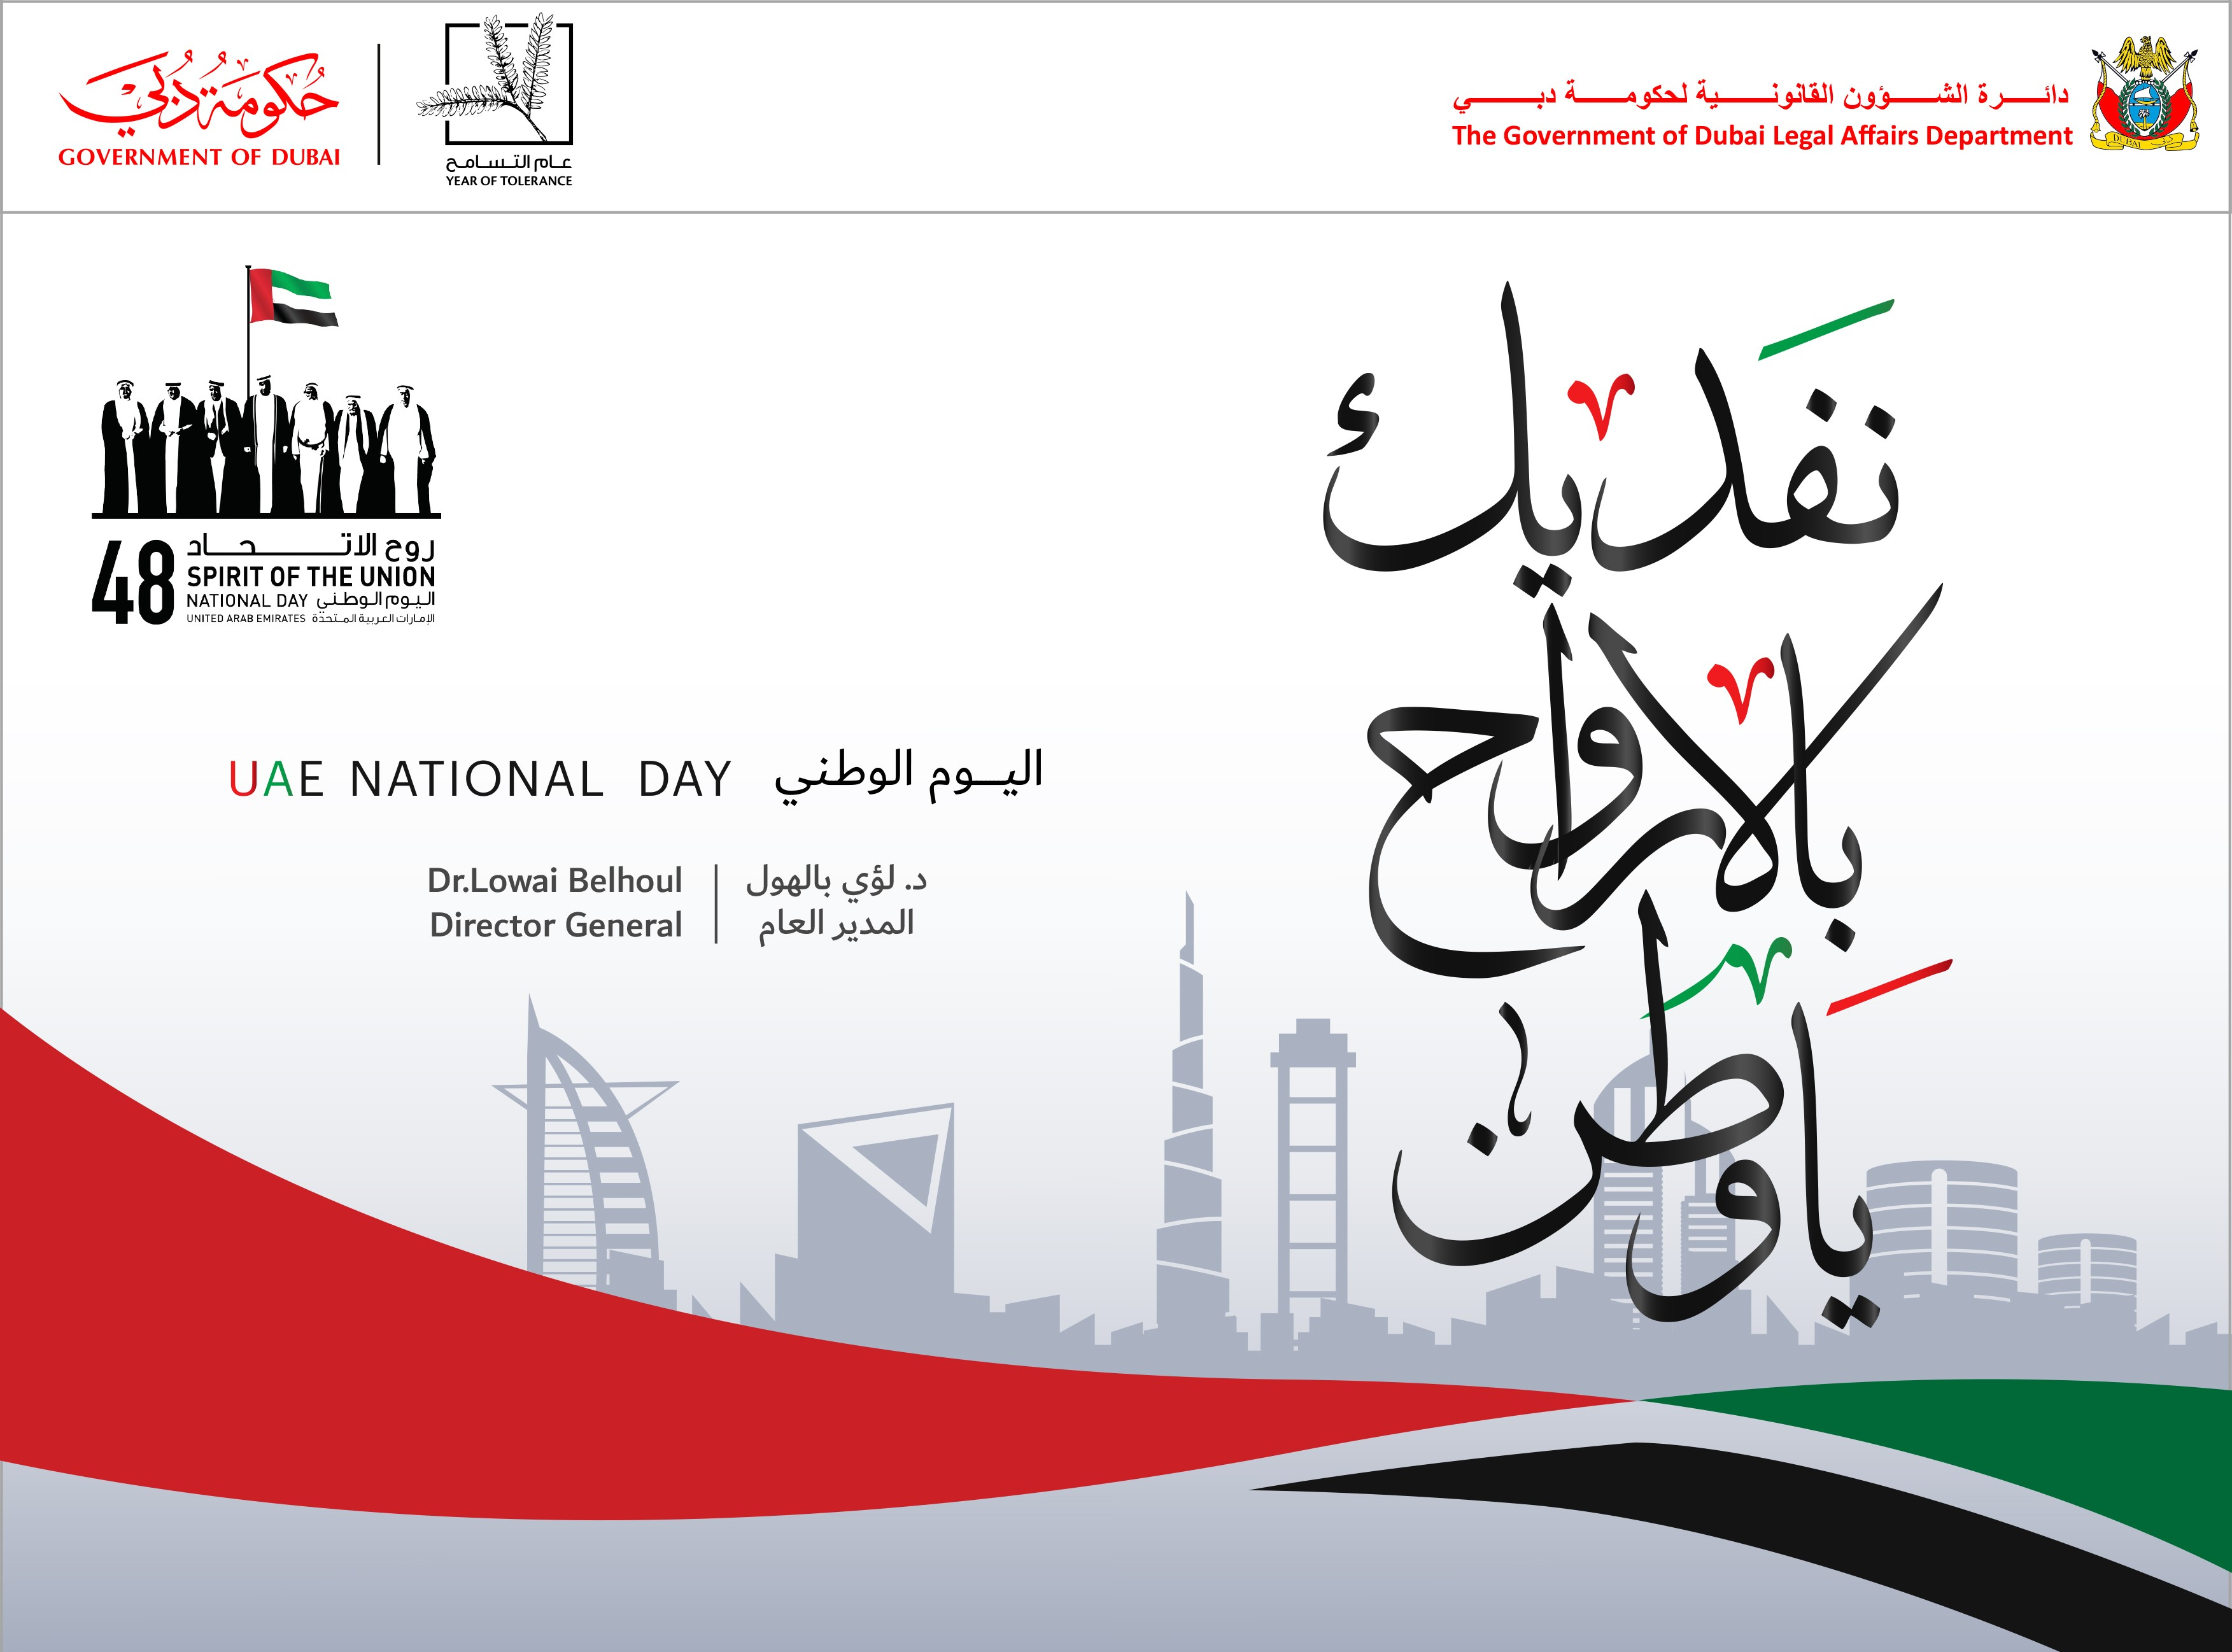 Words of His Excellency Dr. Lowai Mohamed Belhoul, Director General of the Government of Dubai Legal Affairs Department on the Occasion of the UAE's 48th National Day